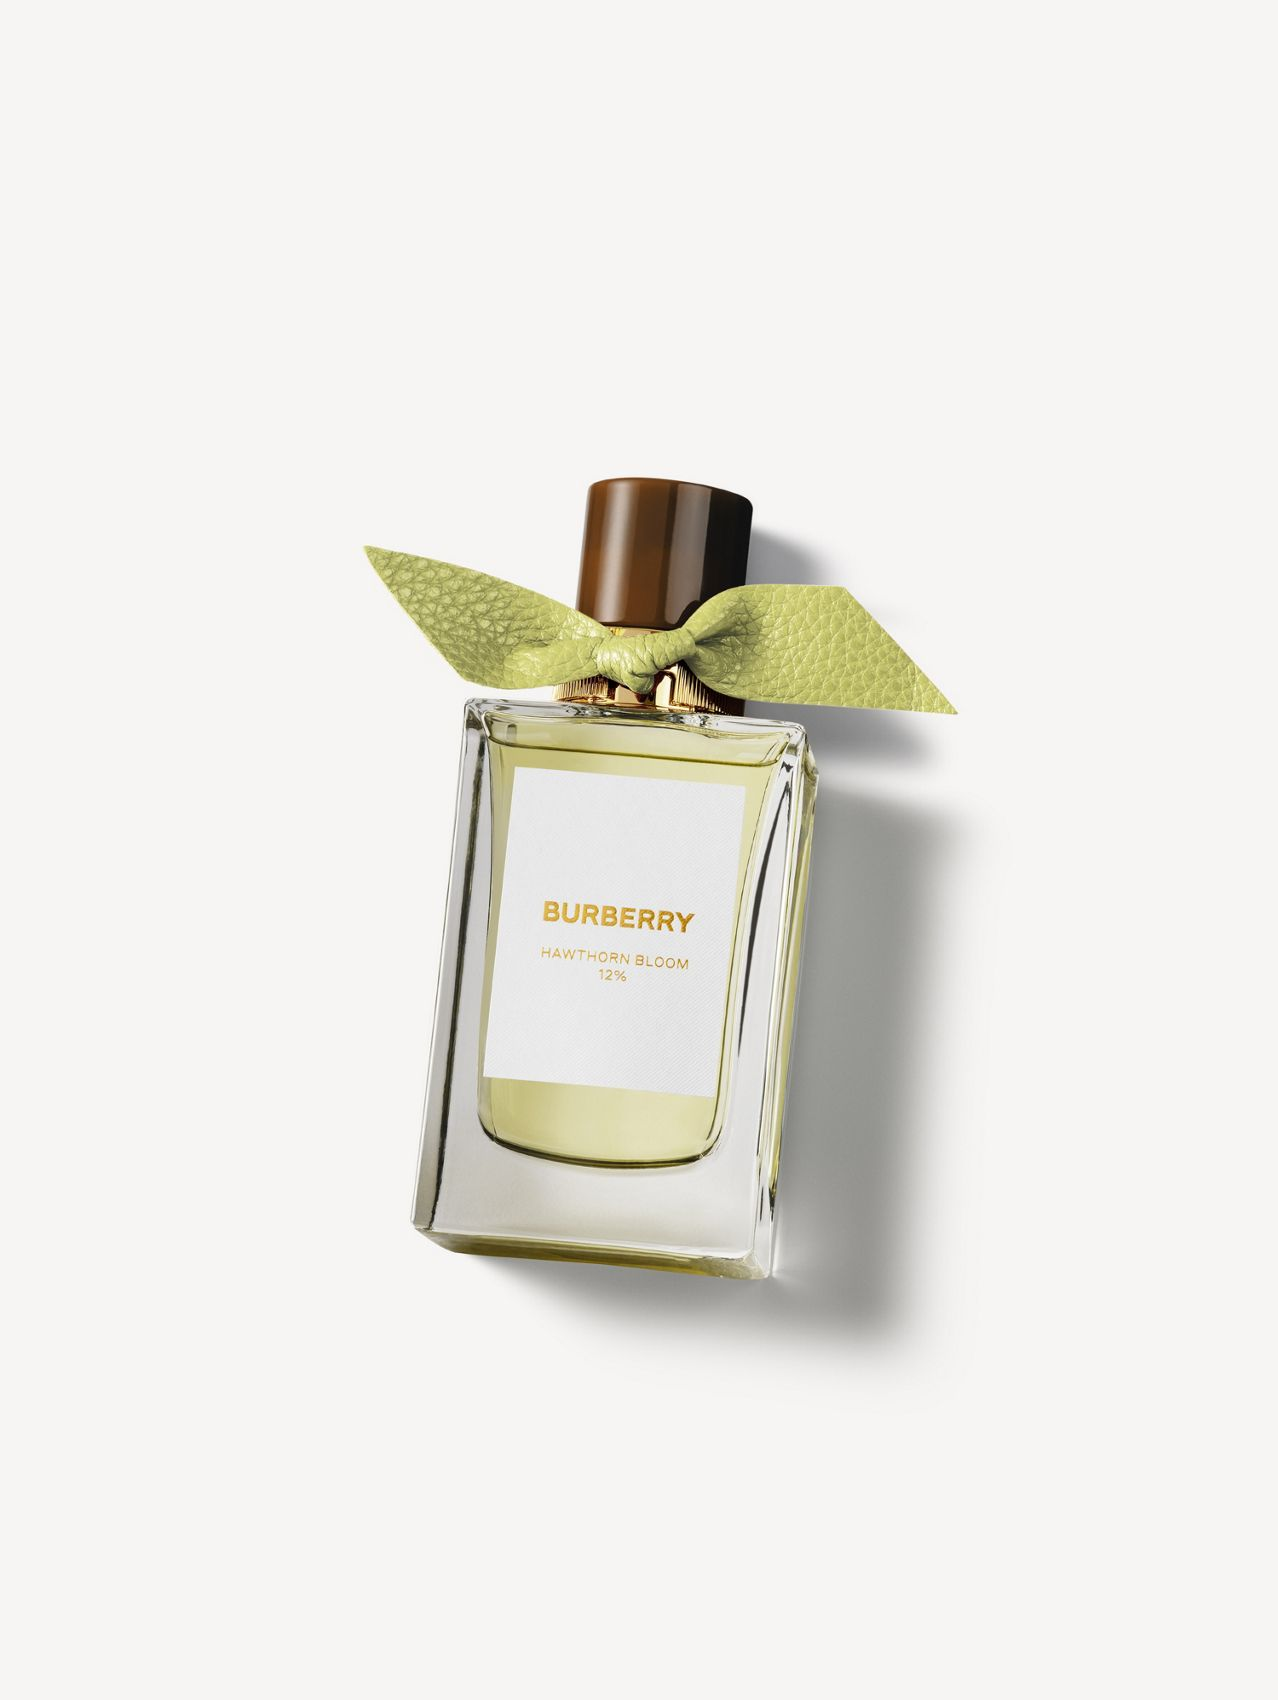 Burberry Signatures Hawthorn Bloom Eau de Parfum 100 ml